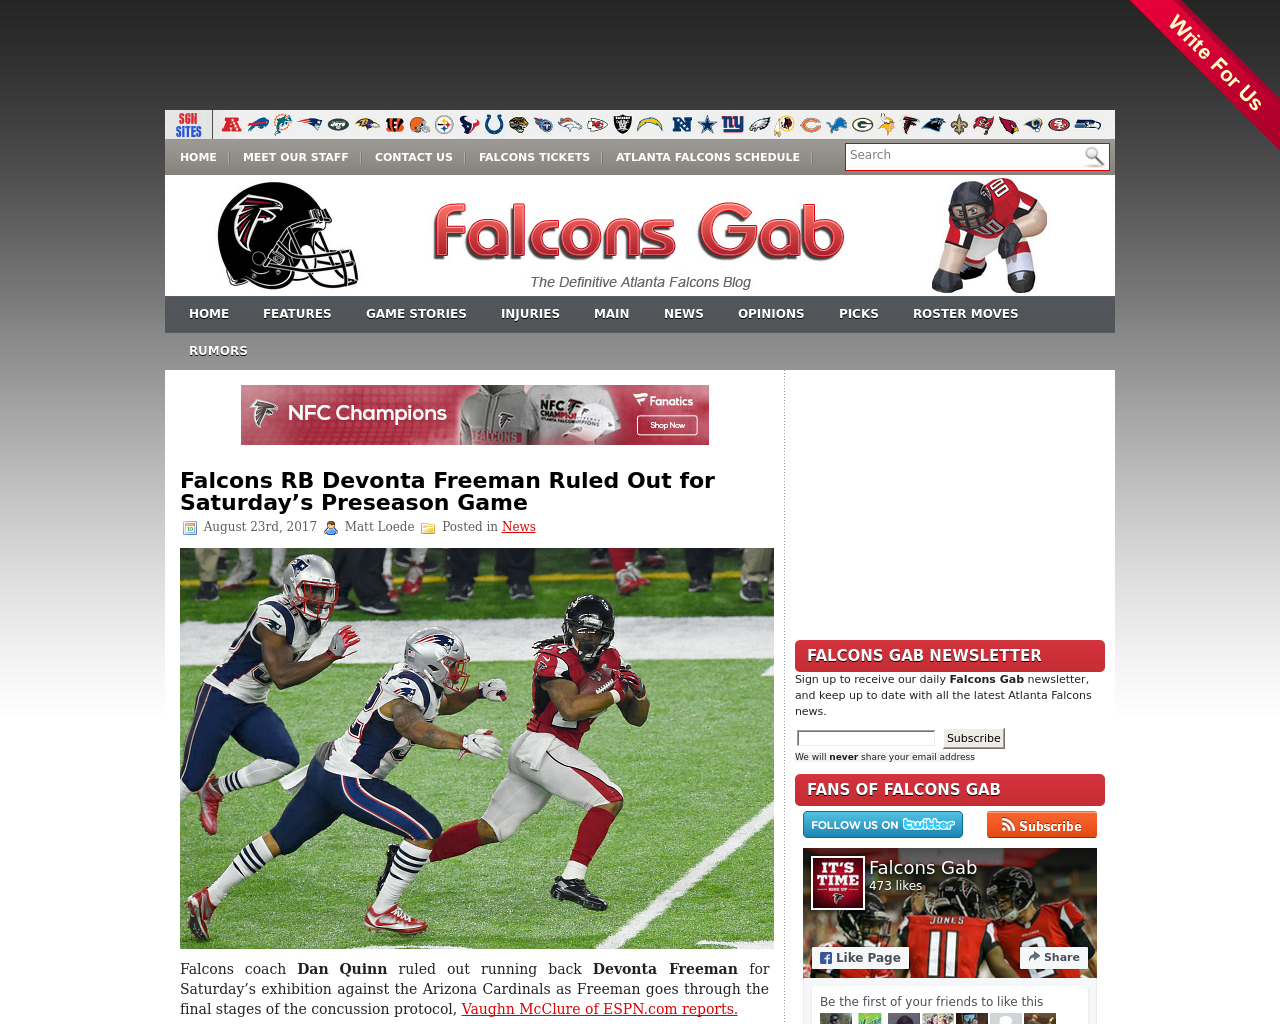 Falcons-Gab-Advertising-Reviews-Pricing